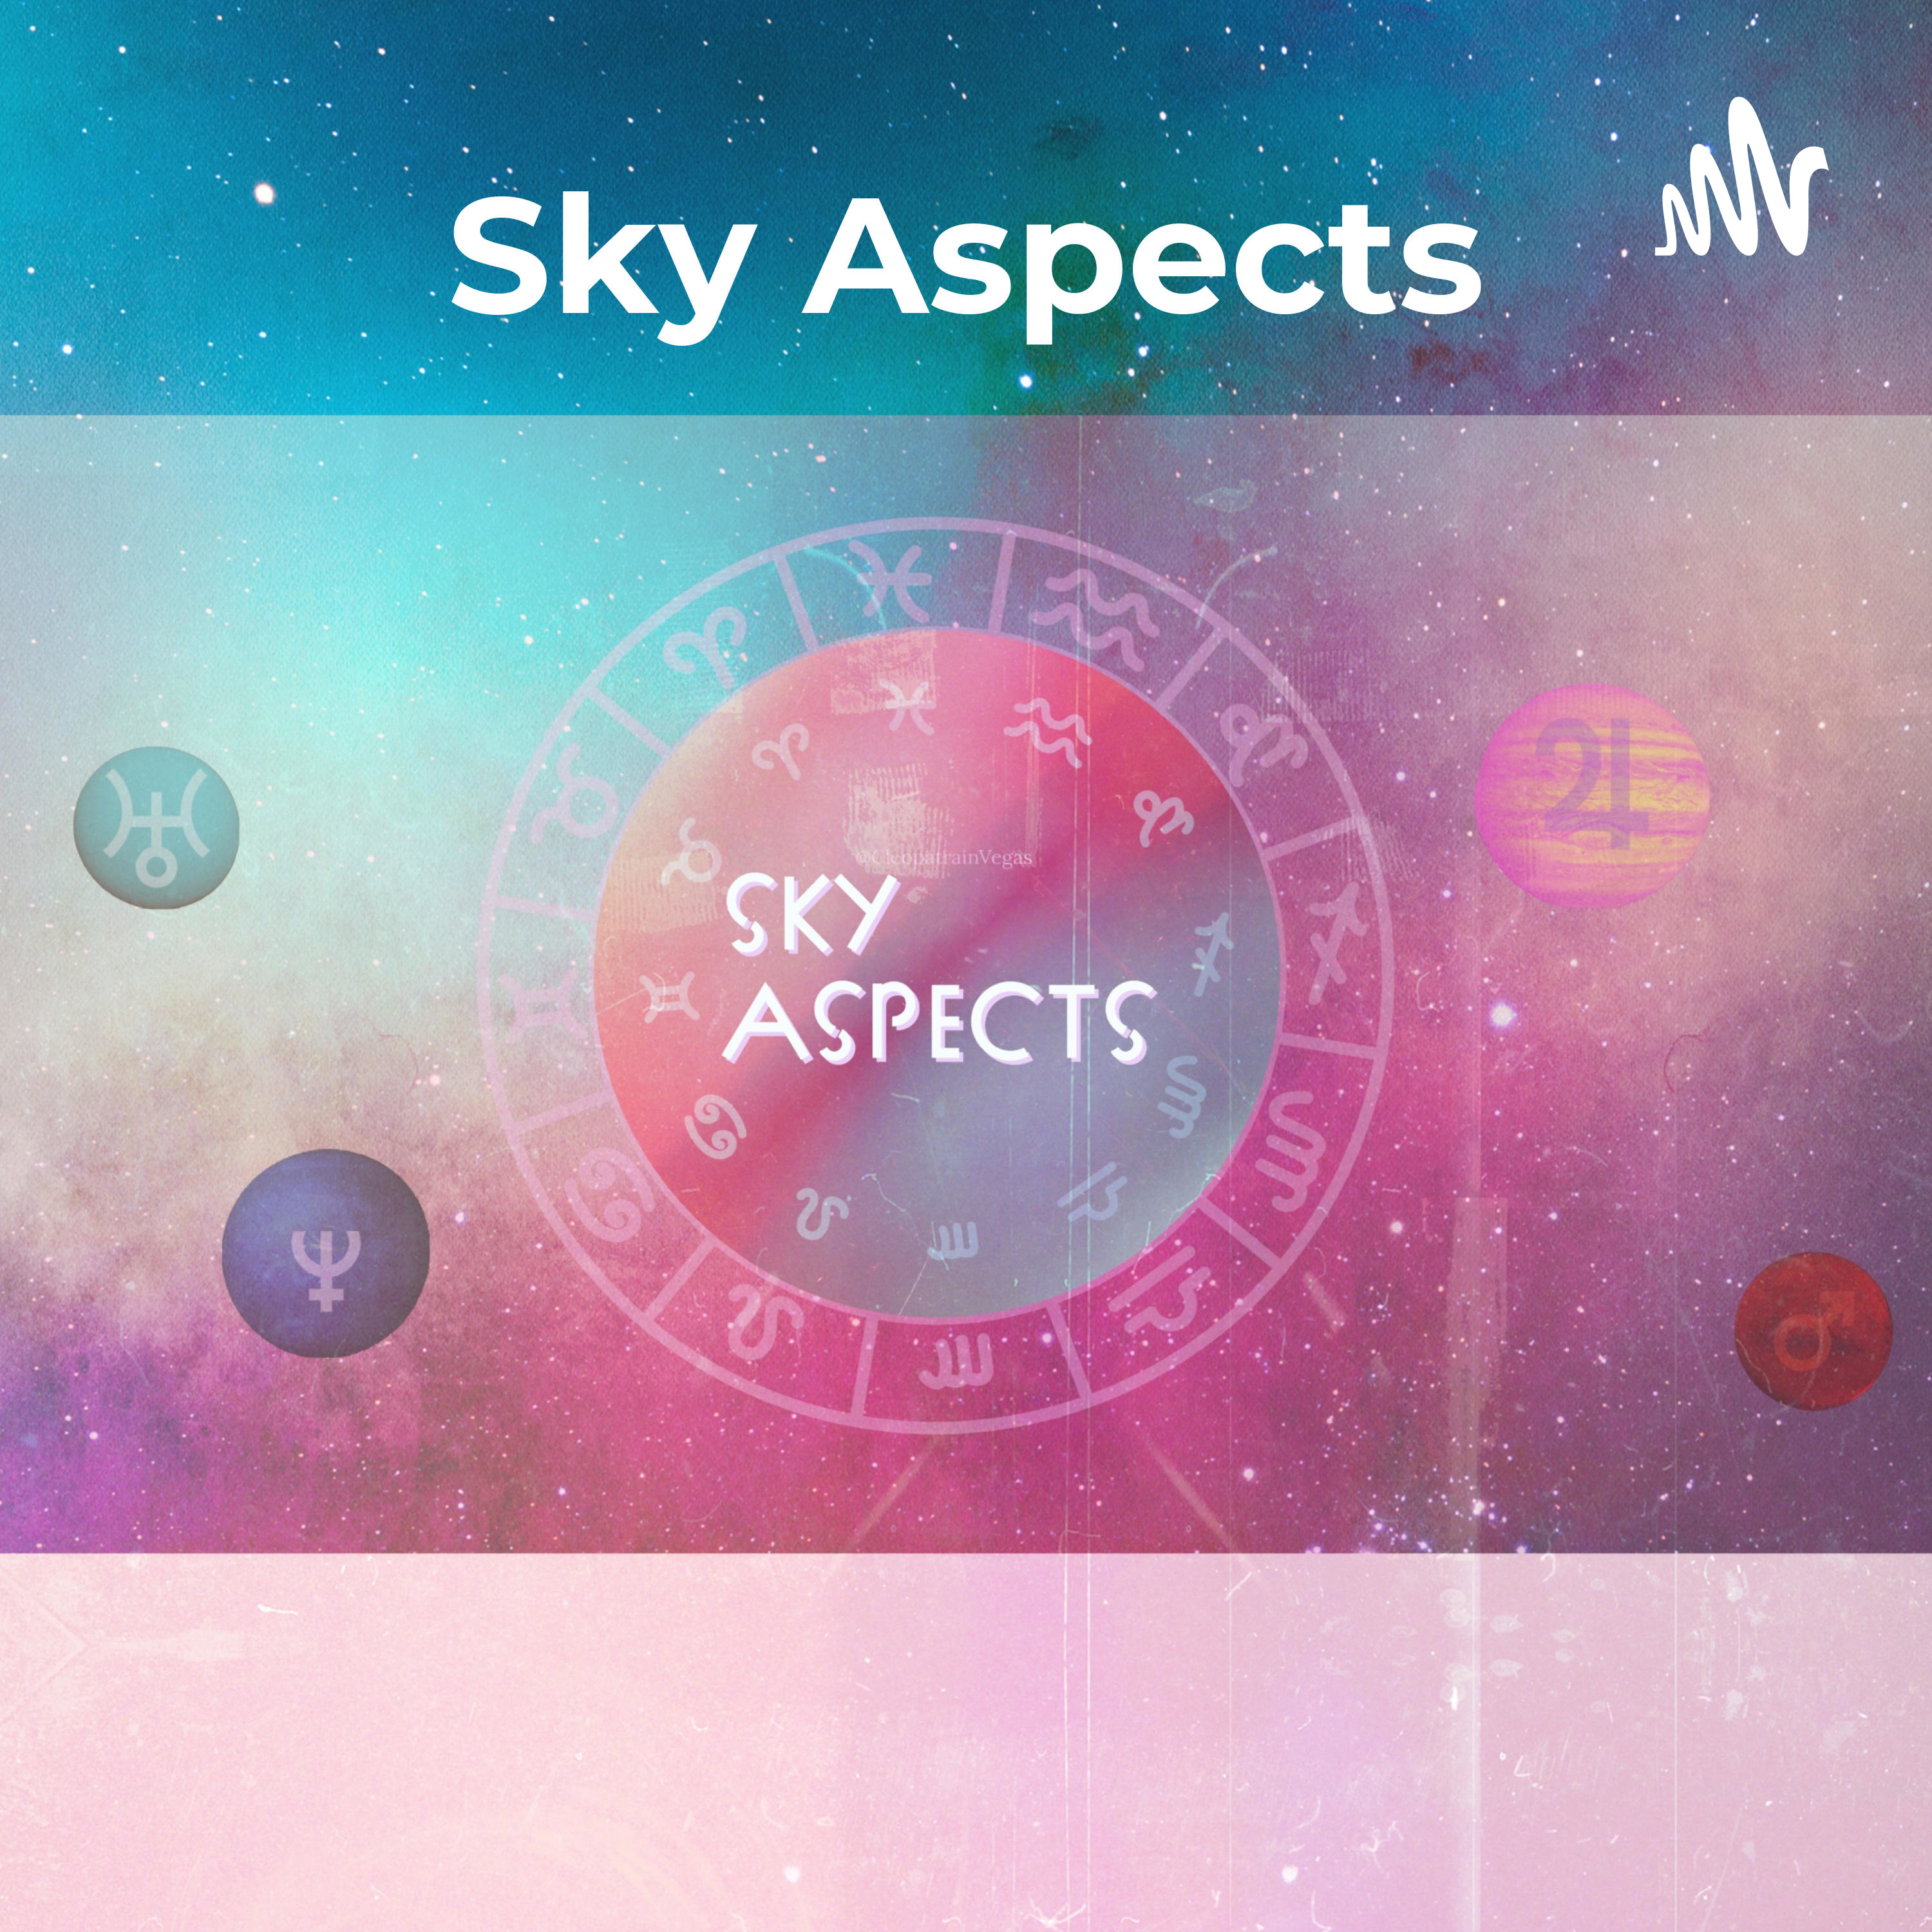 Weekly Astrology Vibes Transits for May 10-16 | Jupiter In Pisces 2021 | Mars Square Chiron ☄️⭐